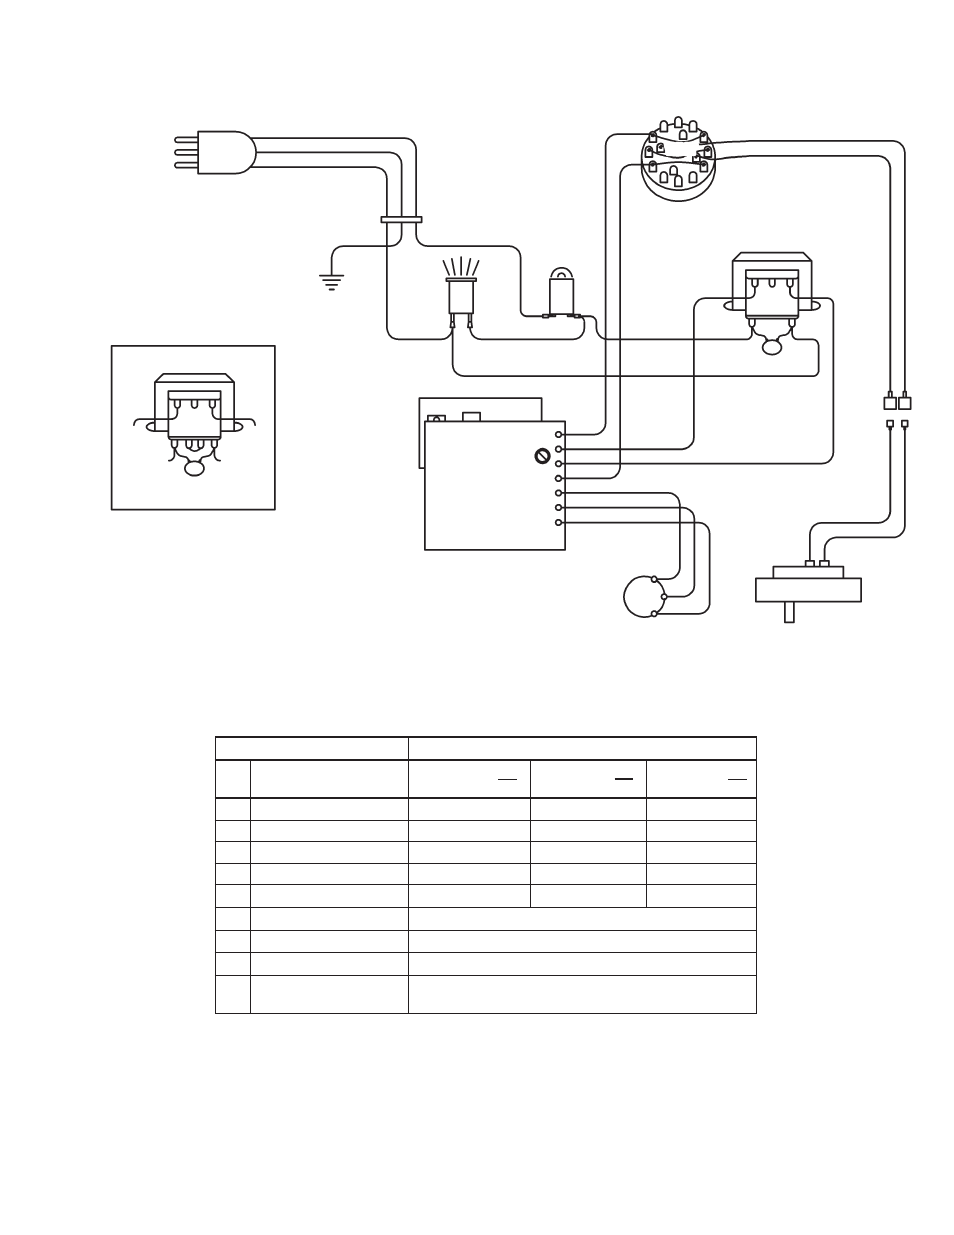 Wire Diagram On Ox Switch Wiring Free Download Gsr205 Go Fer Iii Bug O Systems User 2003 Jeep Liberty Sport